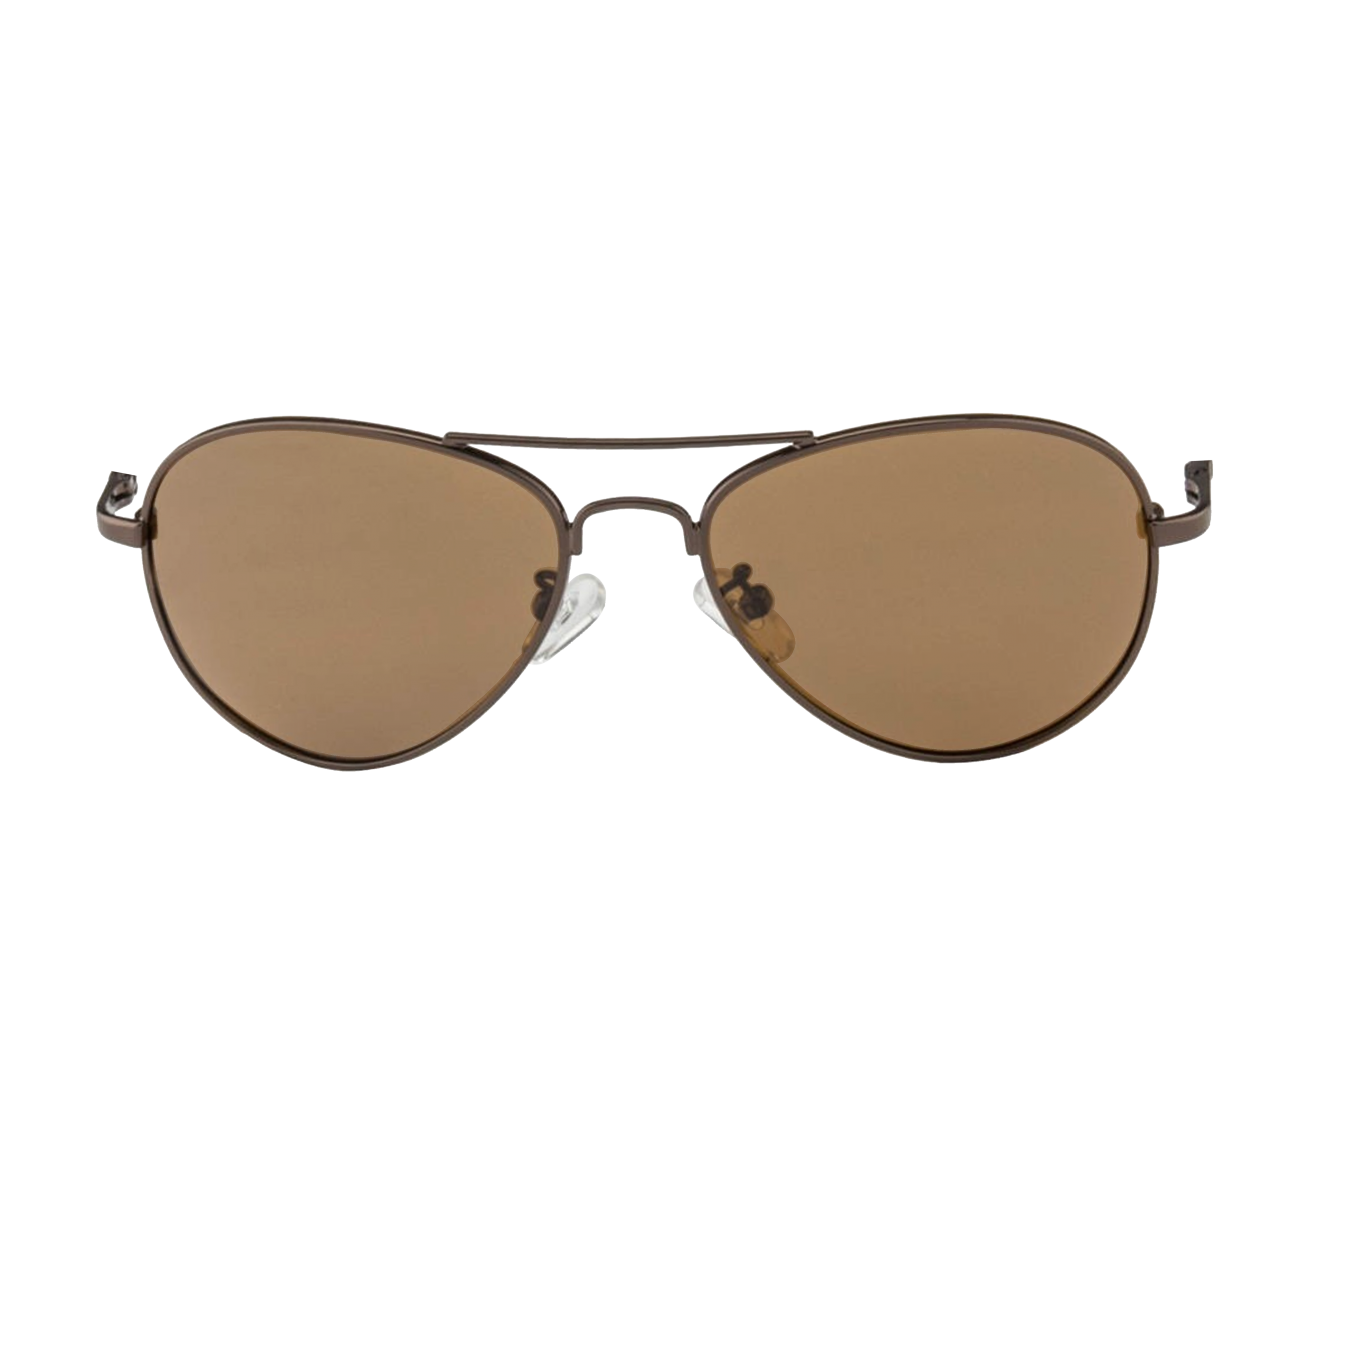 Aviator clipart aviator glass. Sunglasses picture transparentpng